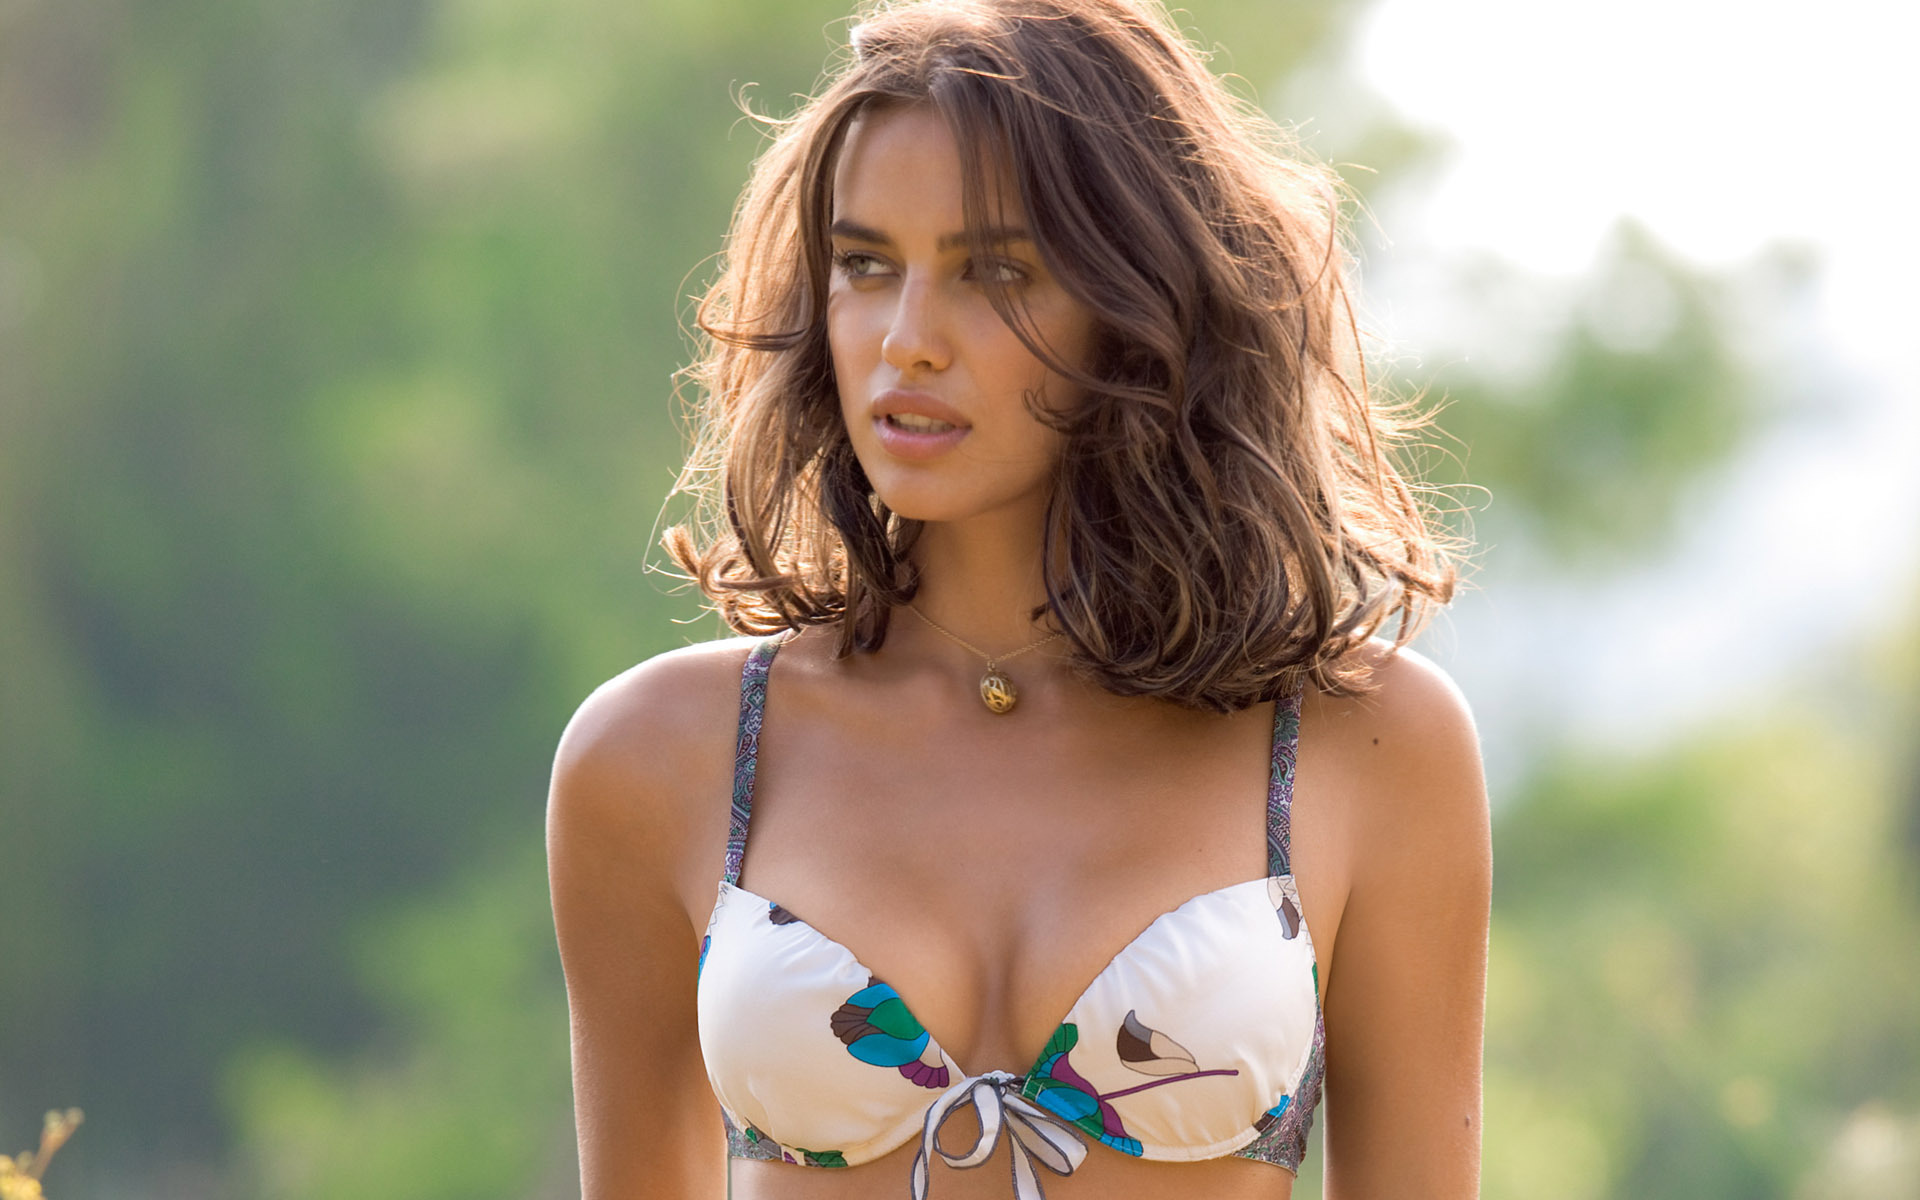 irina shayk full hd wallpaper and background image | 1920x1200 | id